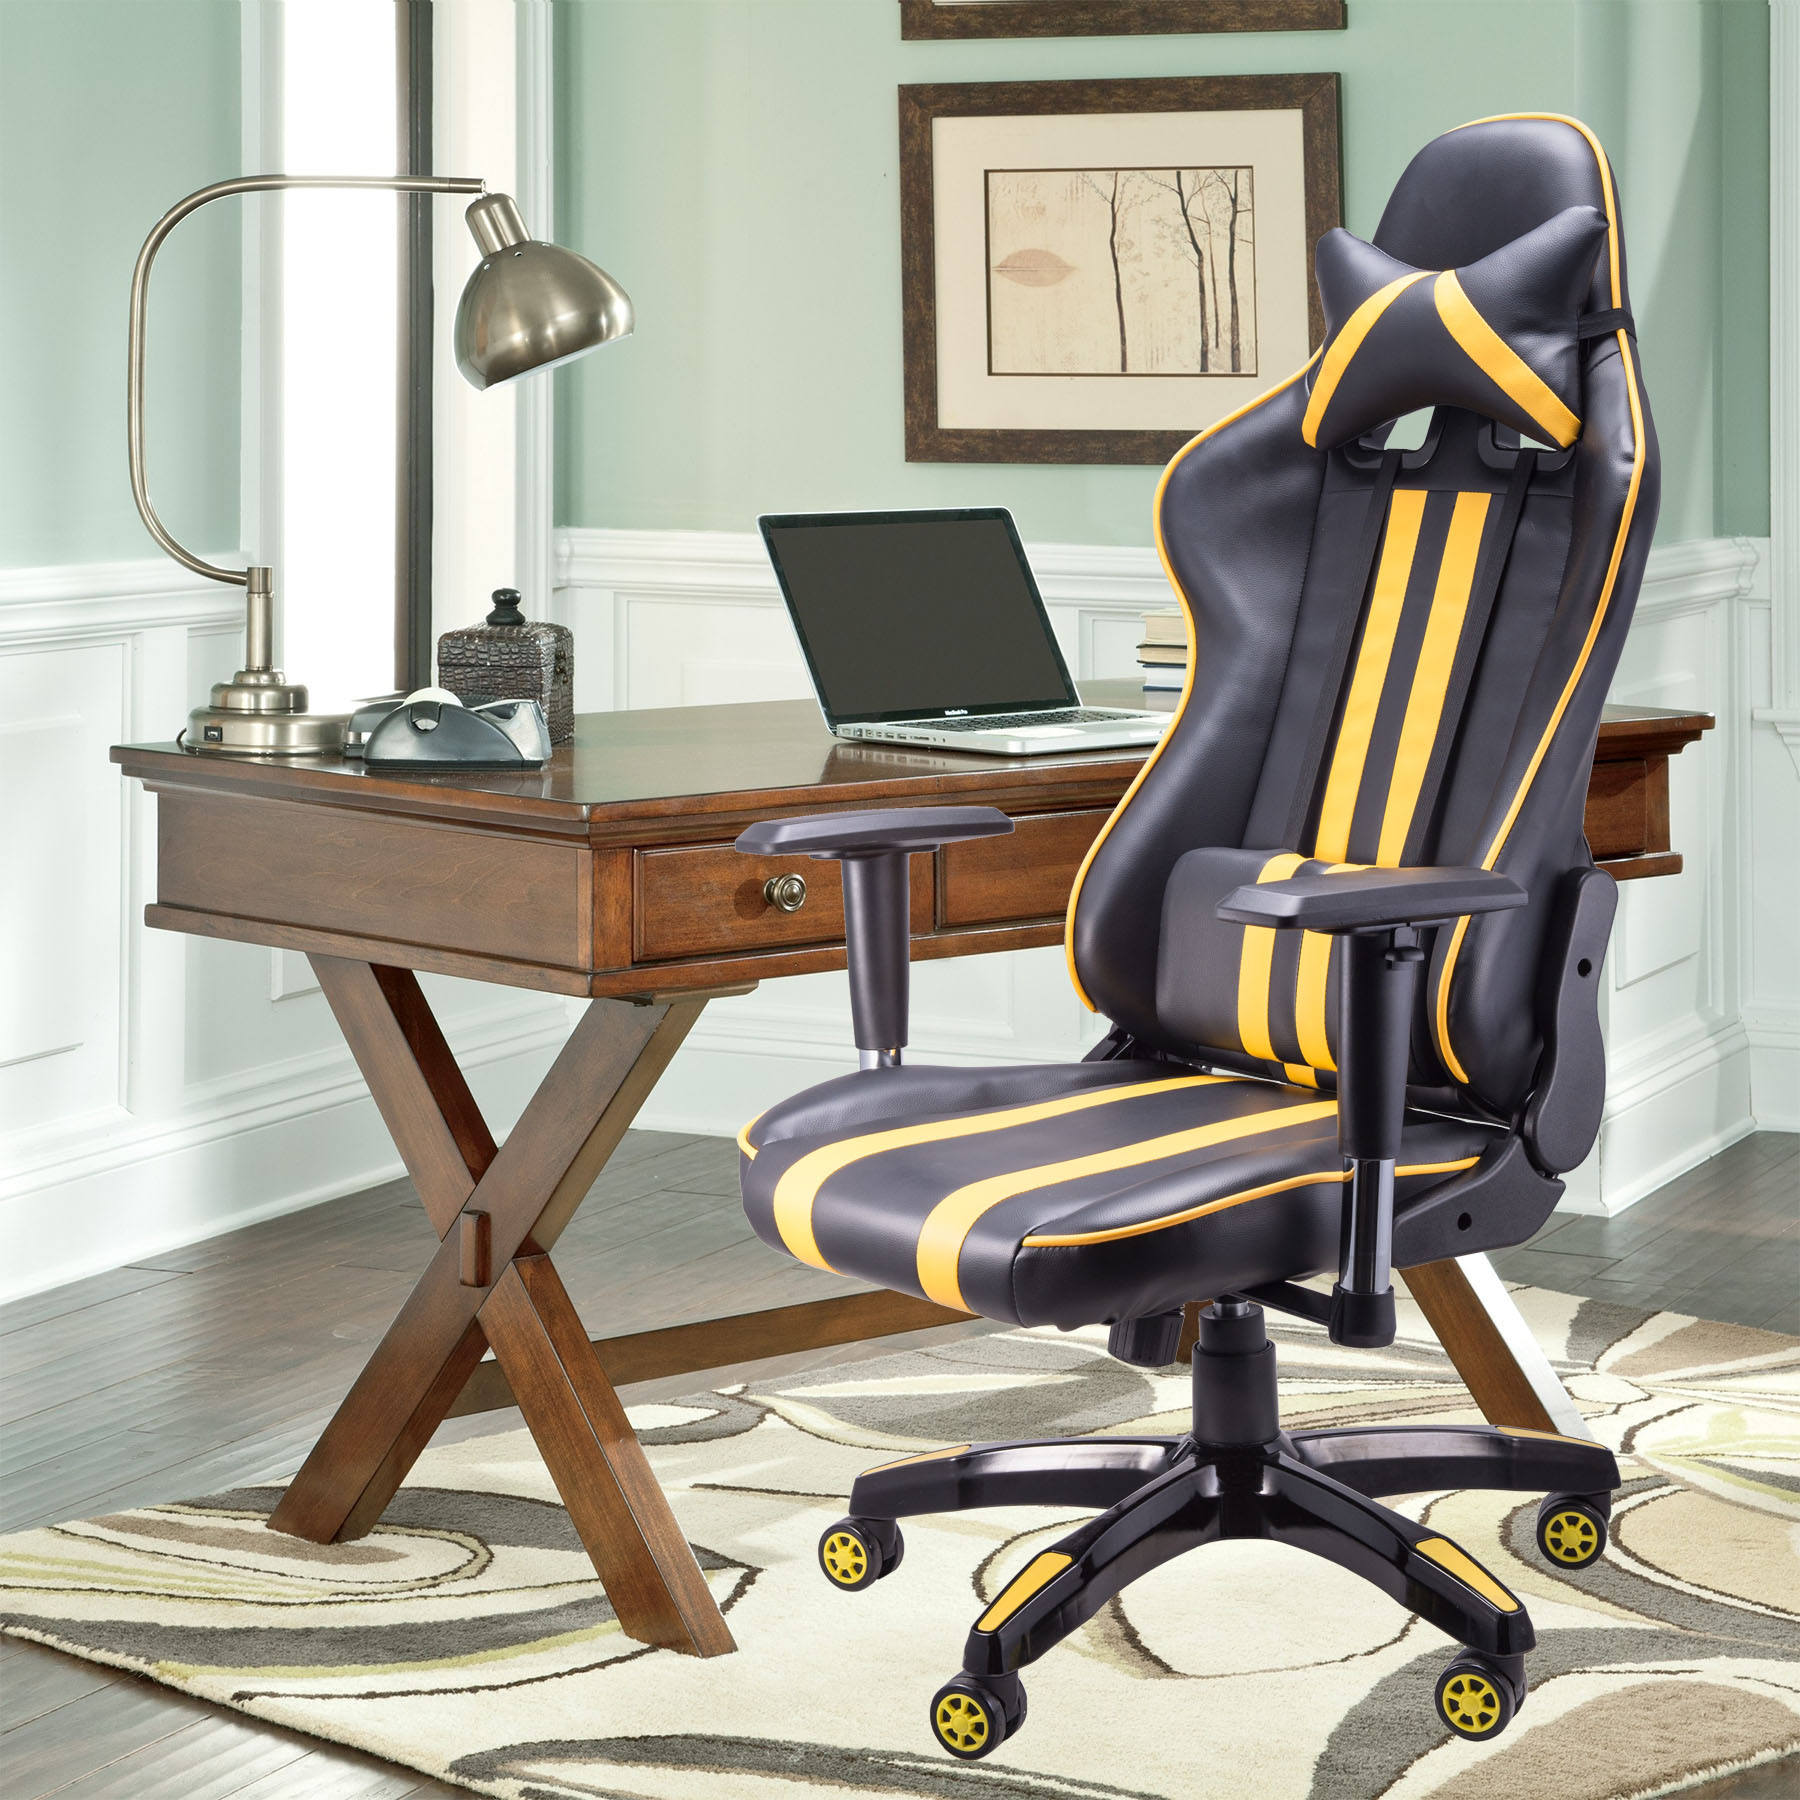 Racing Style Gaming Chair Office Chair Great Comfort & Support High Backrest